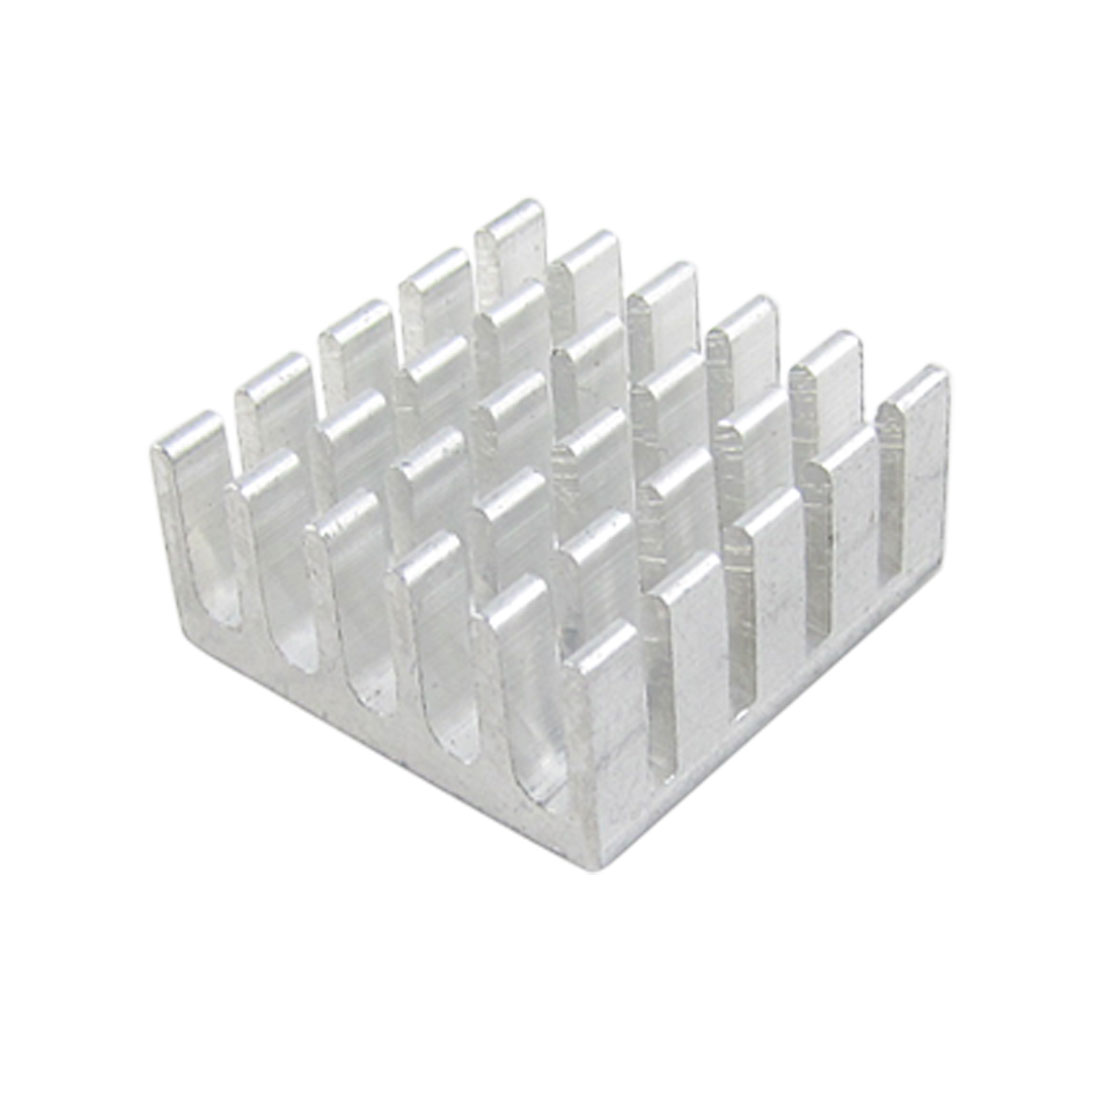 Aluminum 22 x 22 x 10mm Heat Dissipation Cooling Fin